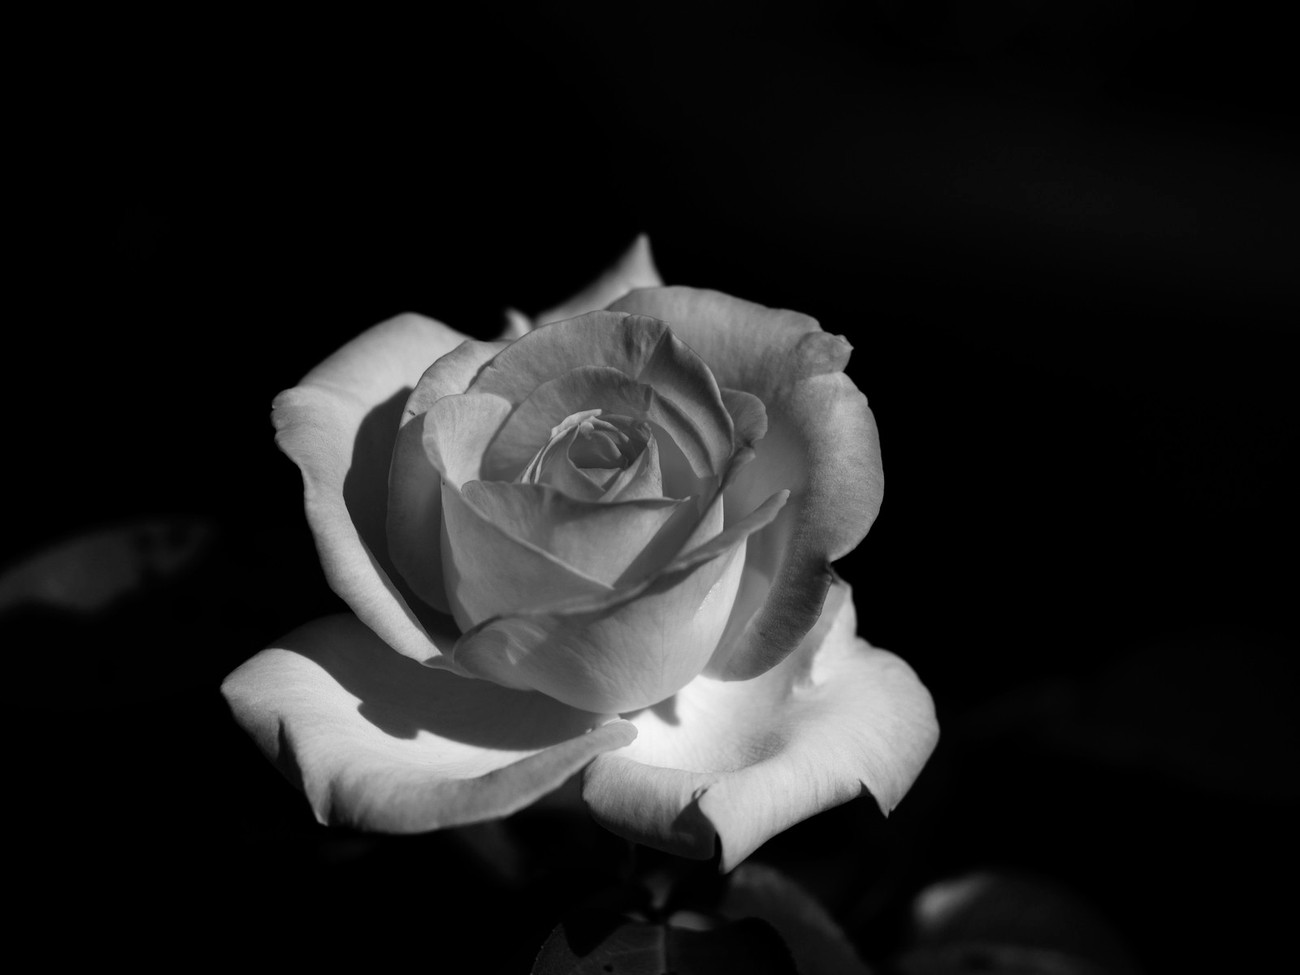 more black and white rose experiments this time with a 2 tone white rose with pink edges